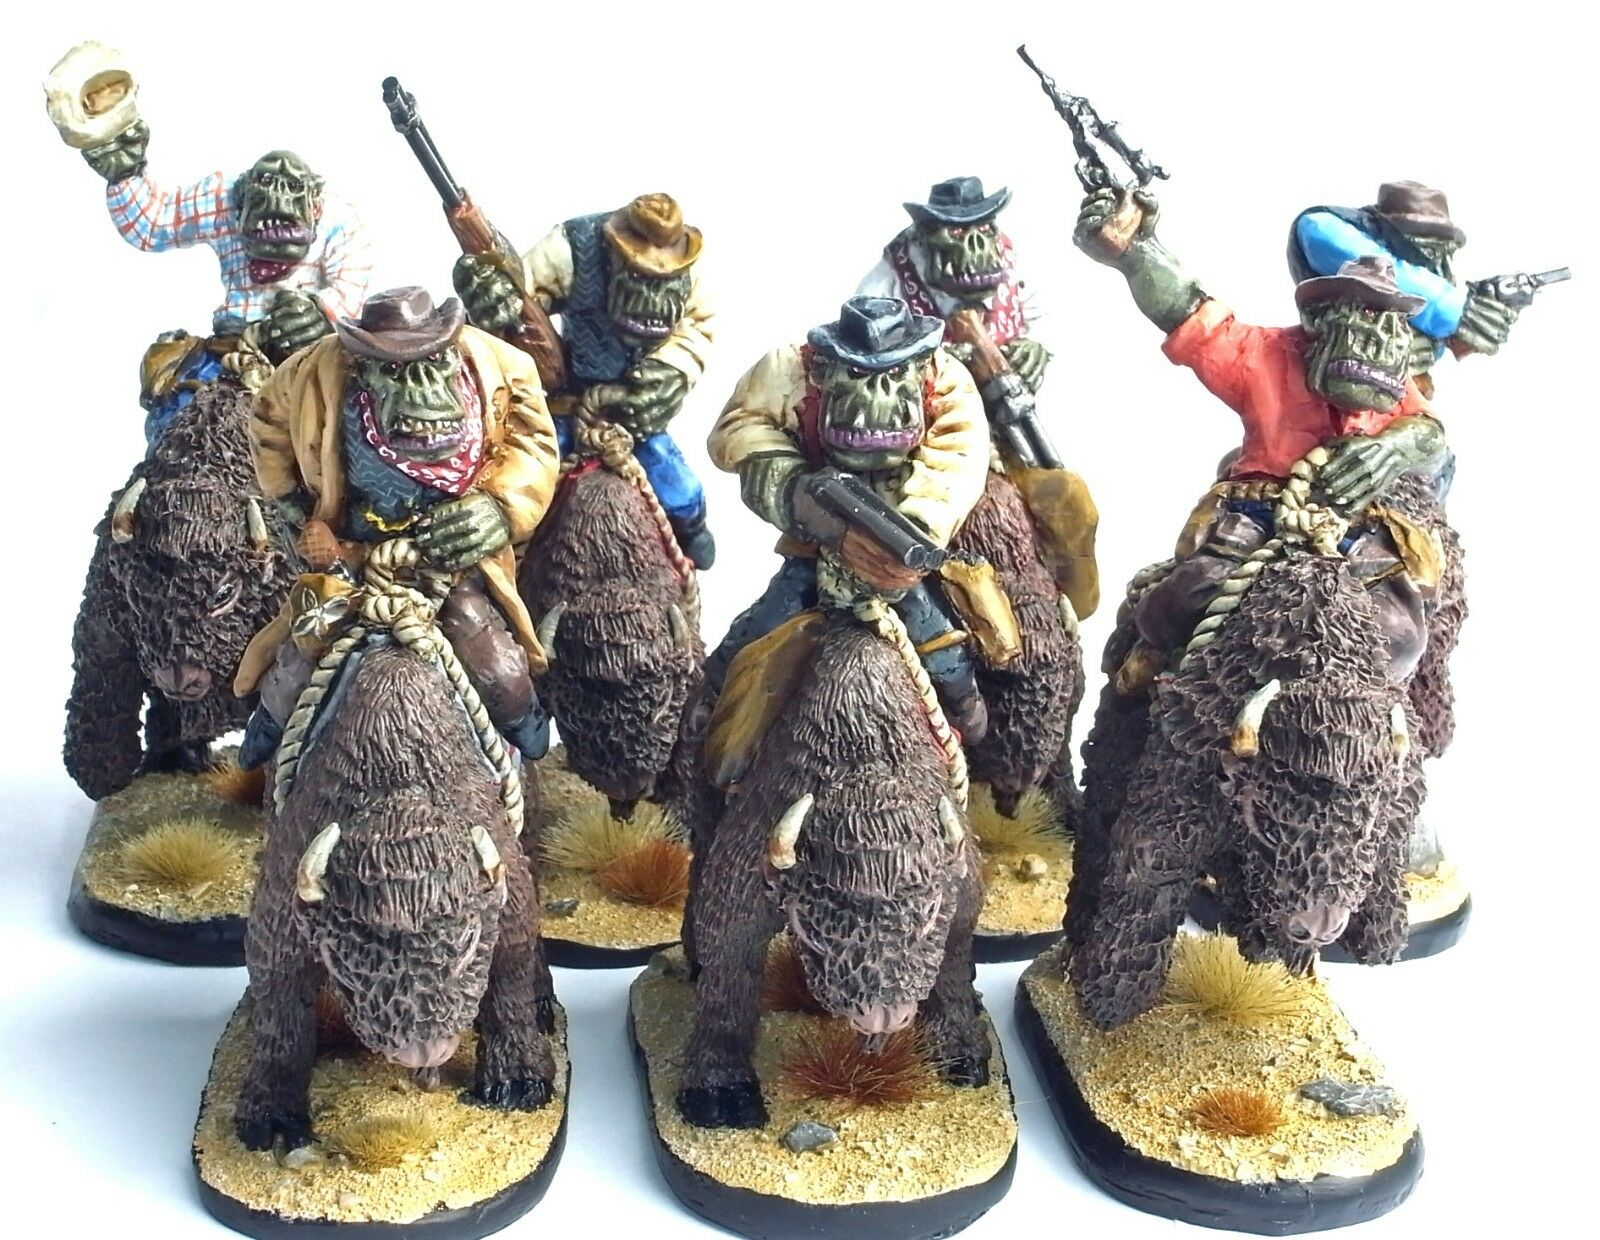 FANTASY WILD WEST SET OF 7 MOUNTED COWBOY ORCS